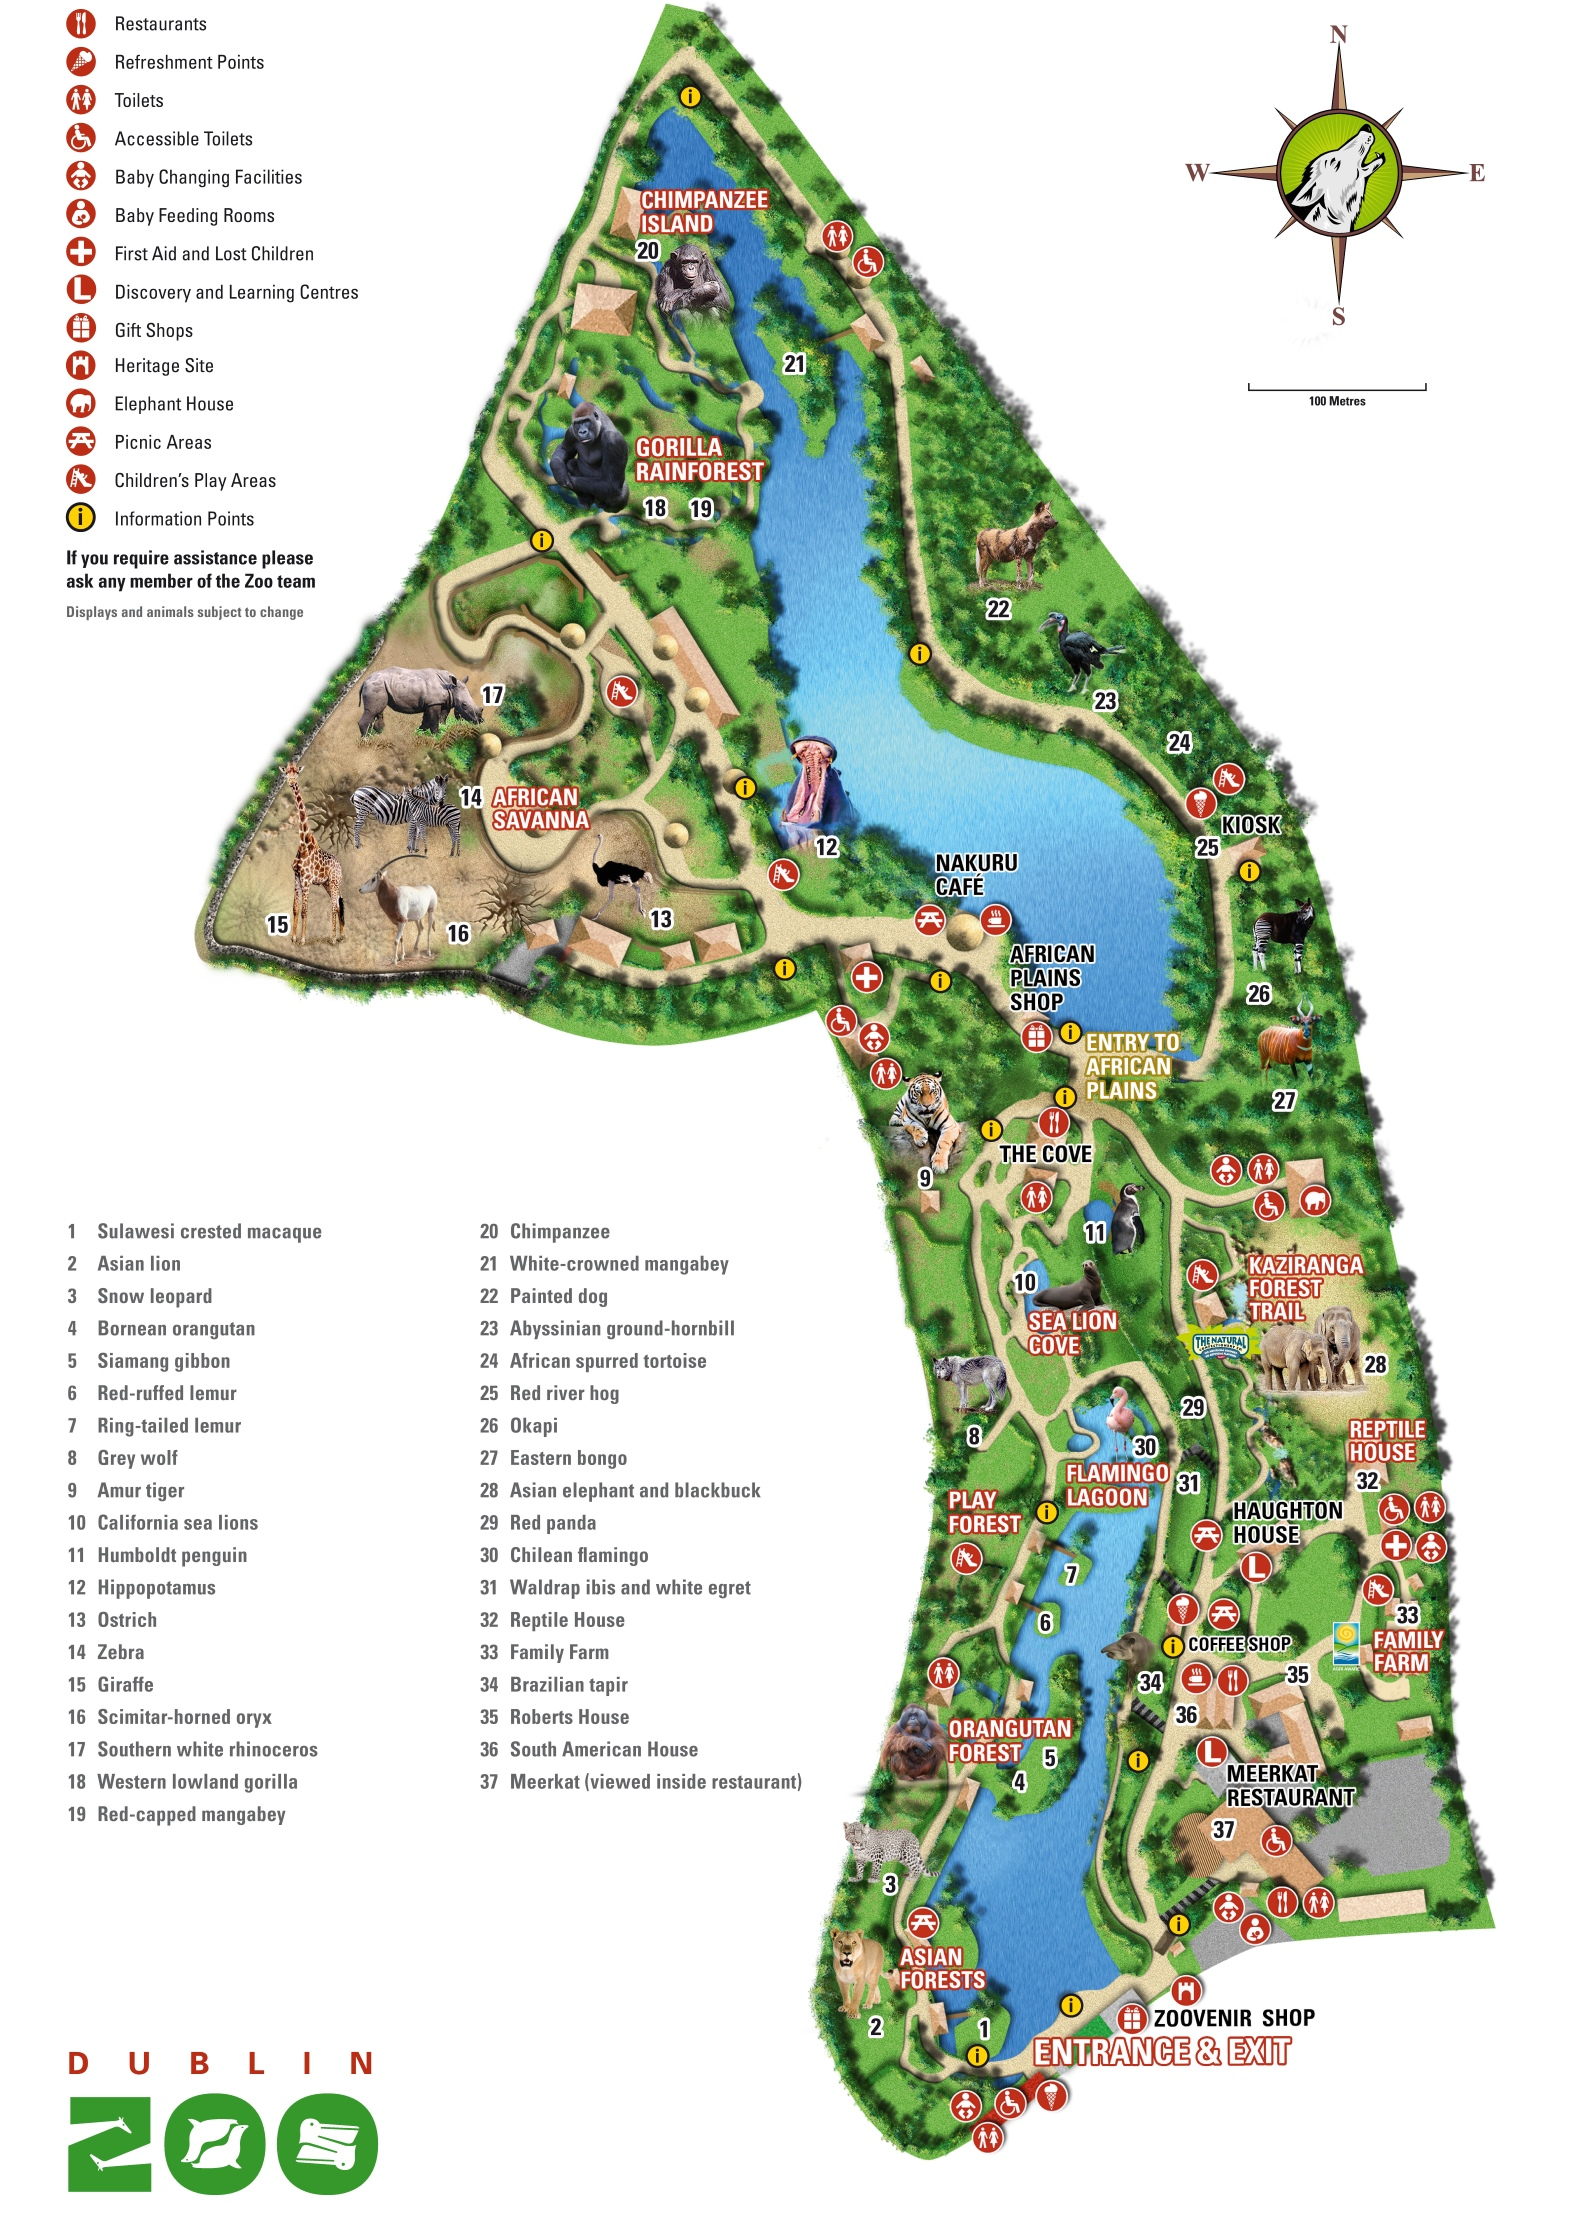 printable paris map with Dublin Zoo Map on The United States   Growth  26 Expansion likewise Grenada Location On The North America Map moreover File 2e Arrondissement  Paris  France   Open Street Map further Dublin Zoo Map as well Athens Metro Map.